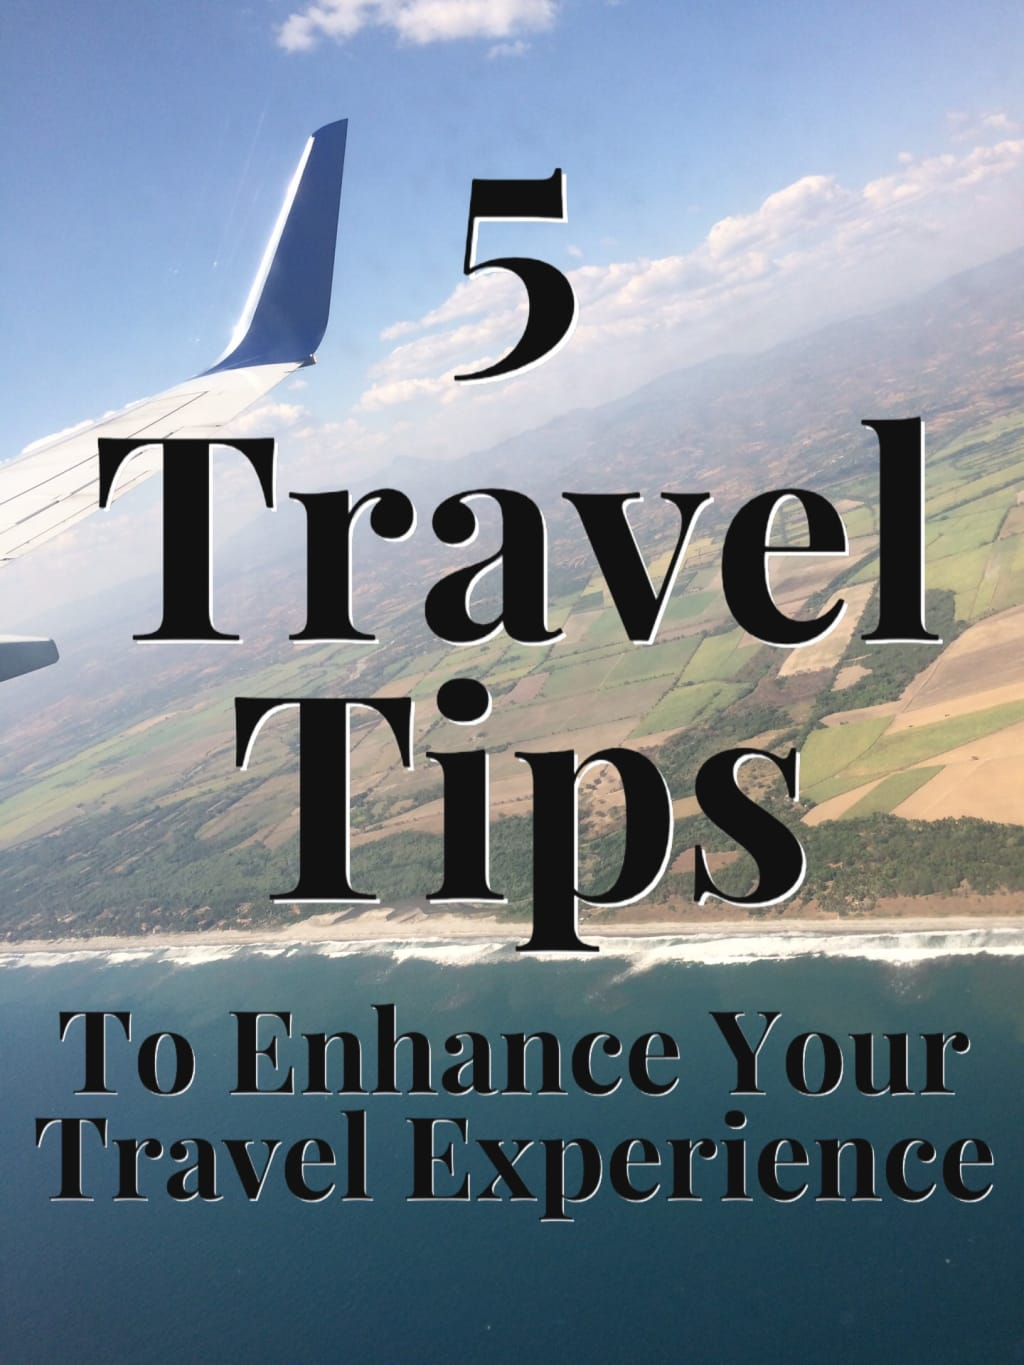 5 Travel Tips to Enhance Your Travel Experience